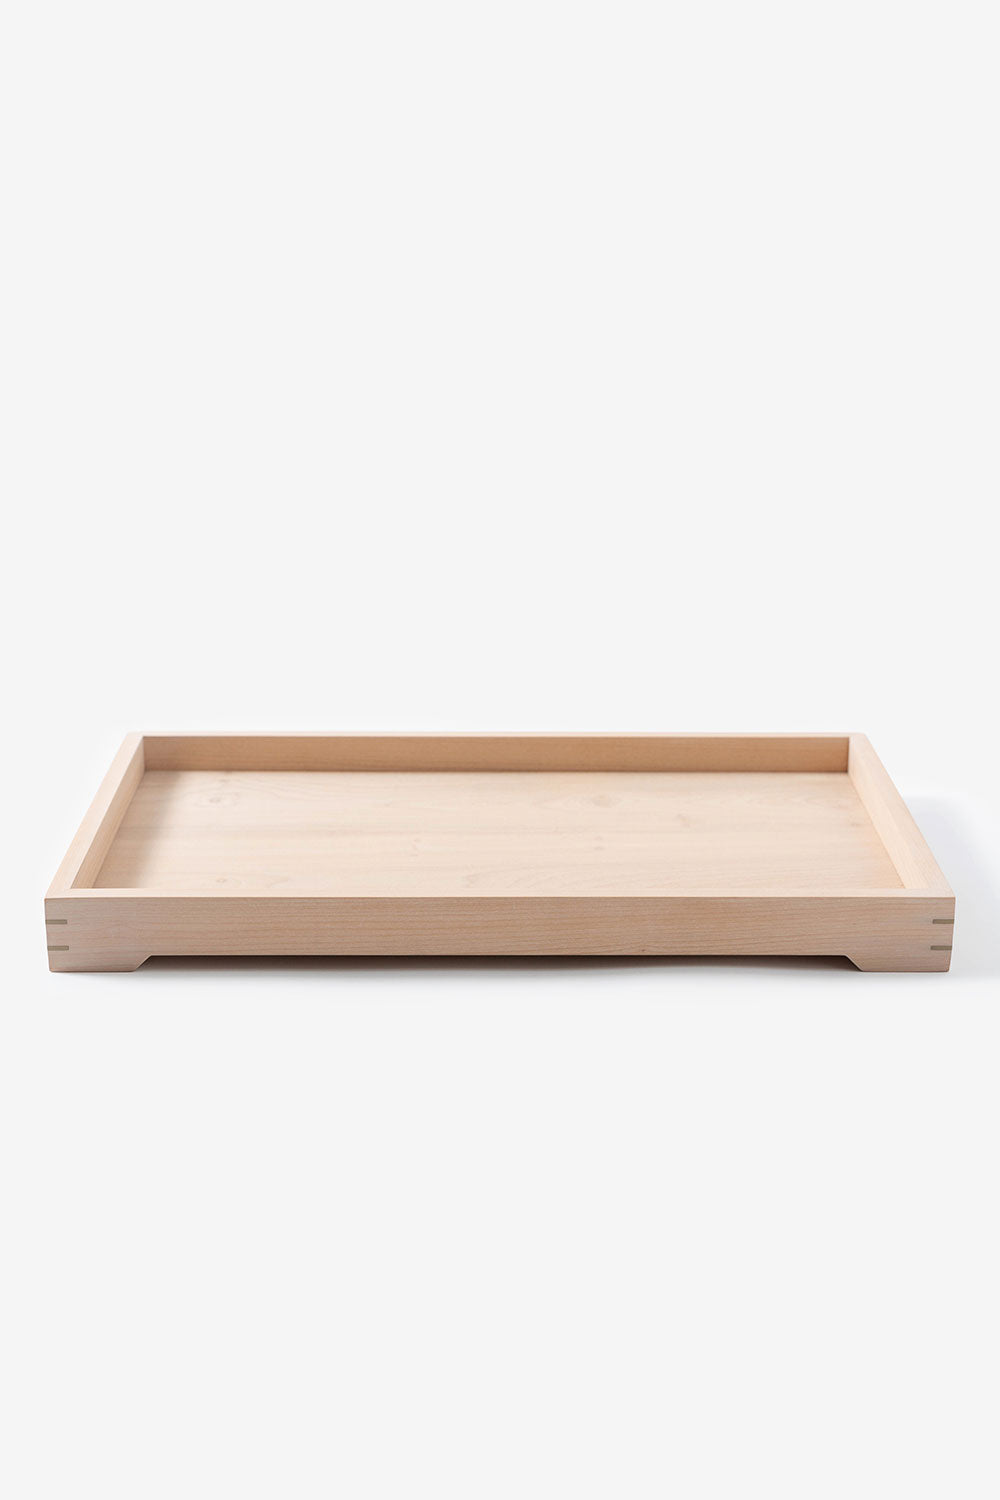 Alabama Chanin Alabama Sawyer: Handmade Wood and Brass Tray Breakfast in Bed Large Tray in White Magnolia